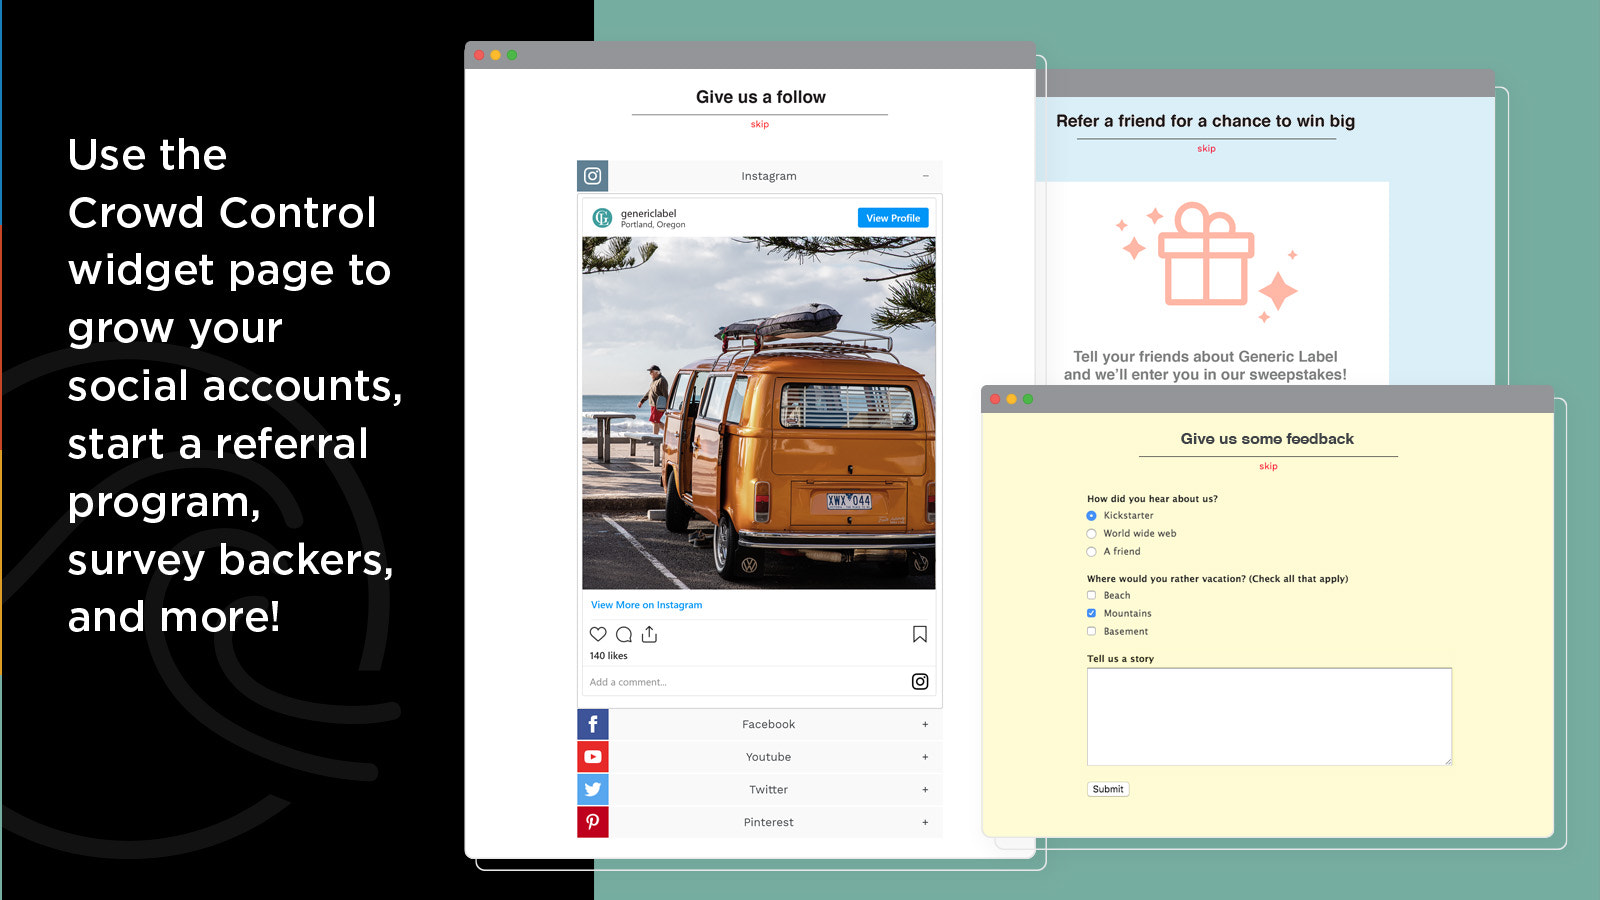 Grow social accounts, get referrals, and survey backers